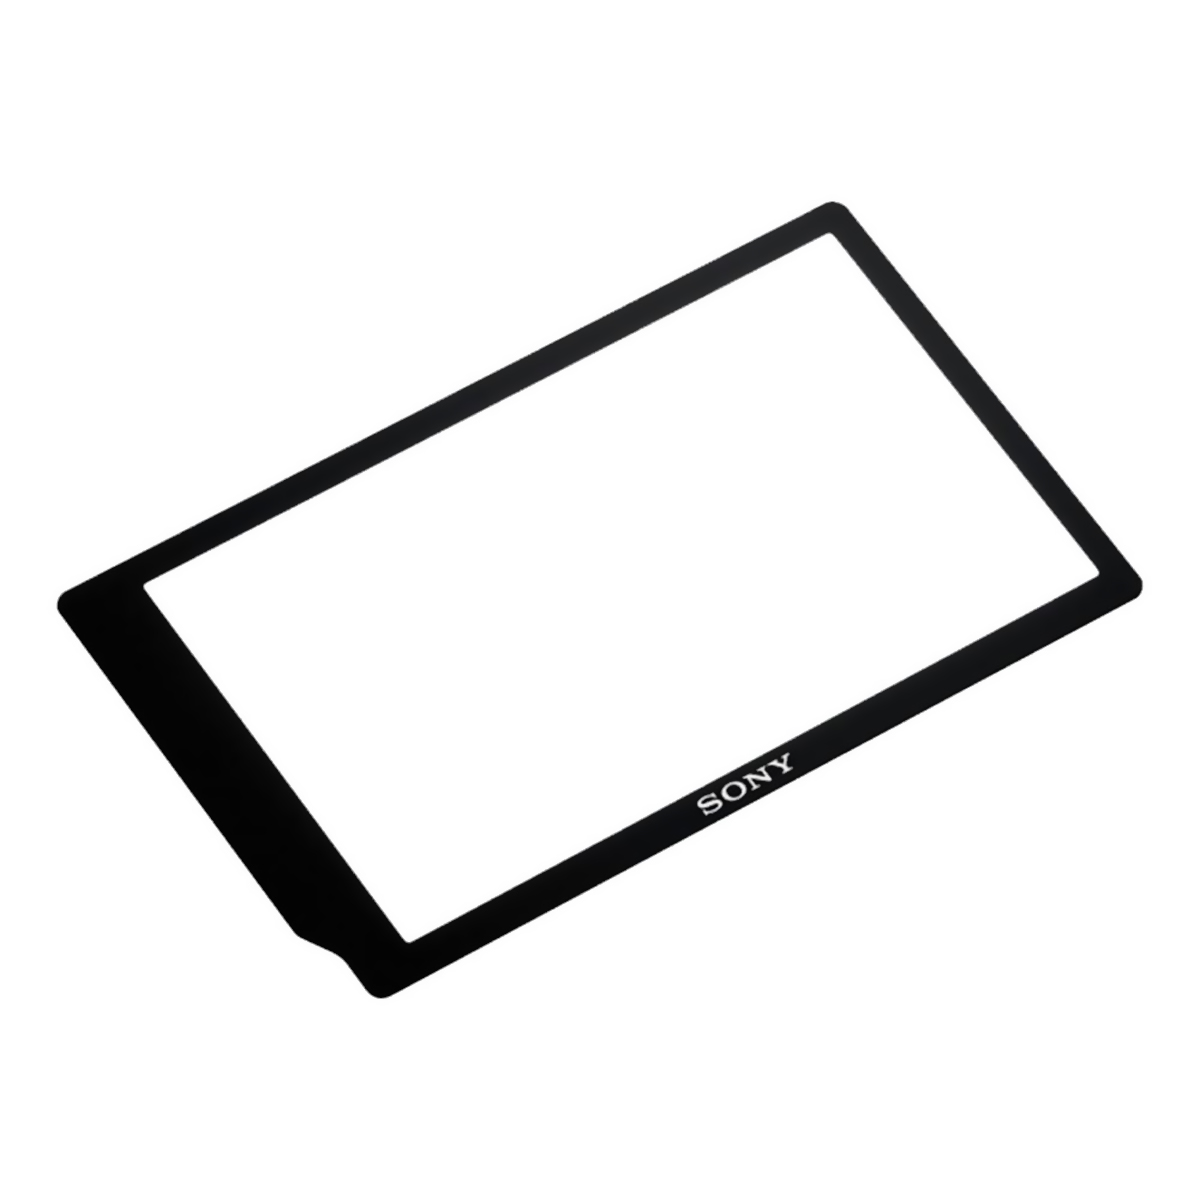 LCD Protective Sheet for Sony Alpha DSLR or NEX Camera